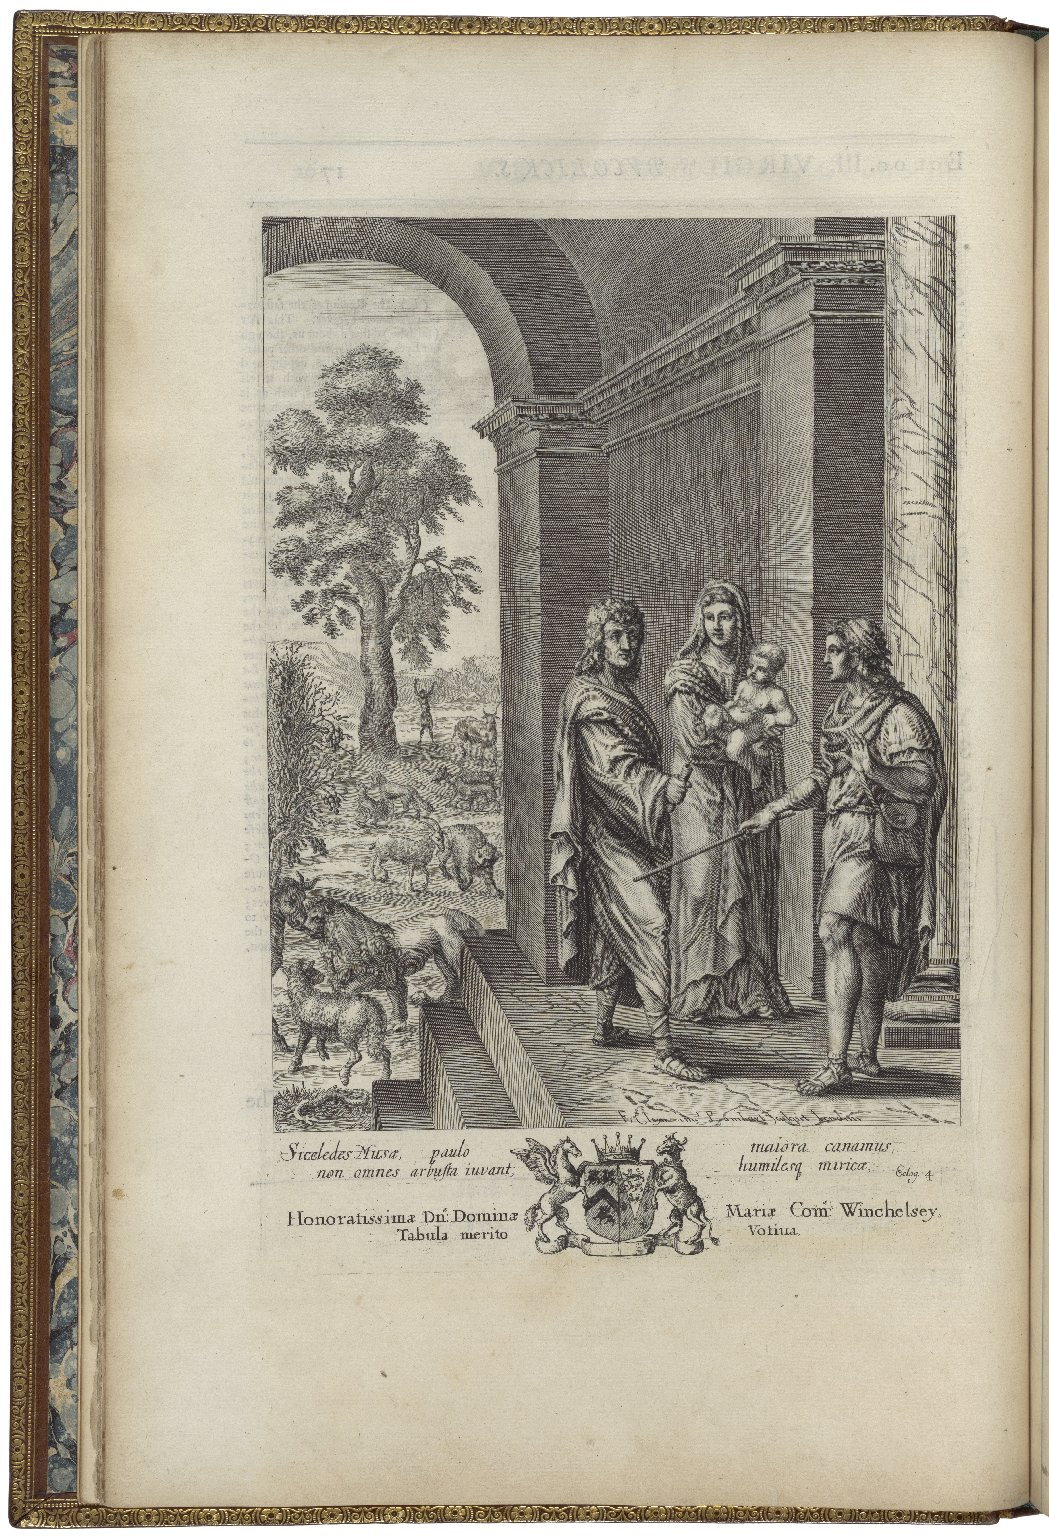 The works of Publius Virgilius Maro / translated, adorn'd with sculpture, and illustrated with annotations, by John Ogilby.